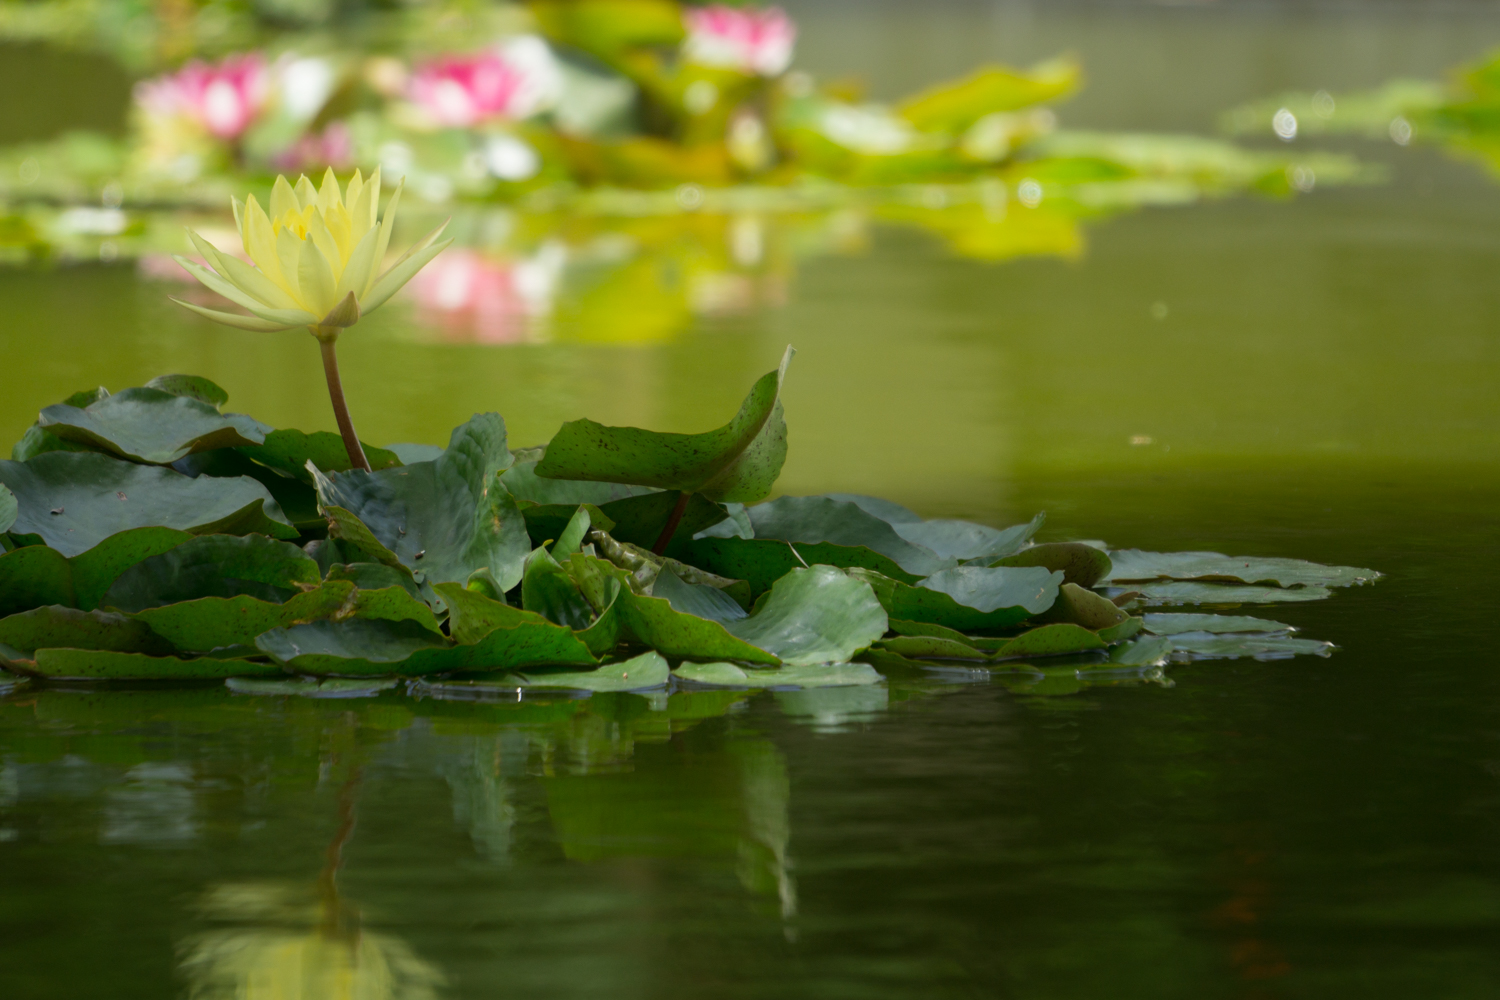 A lily pad flowering